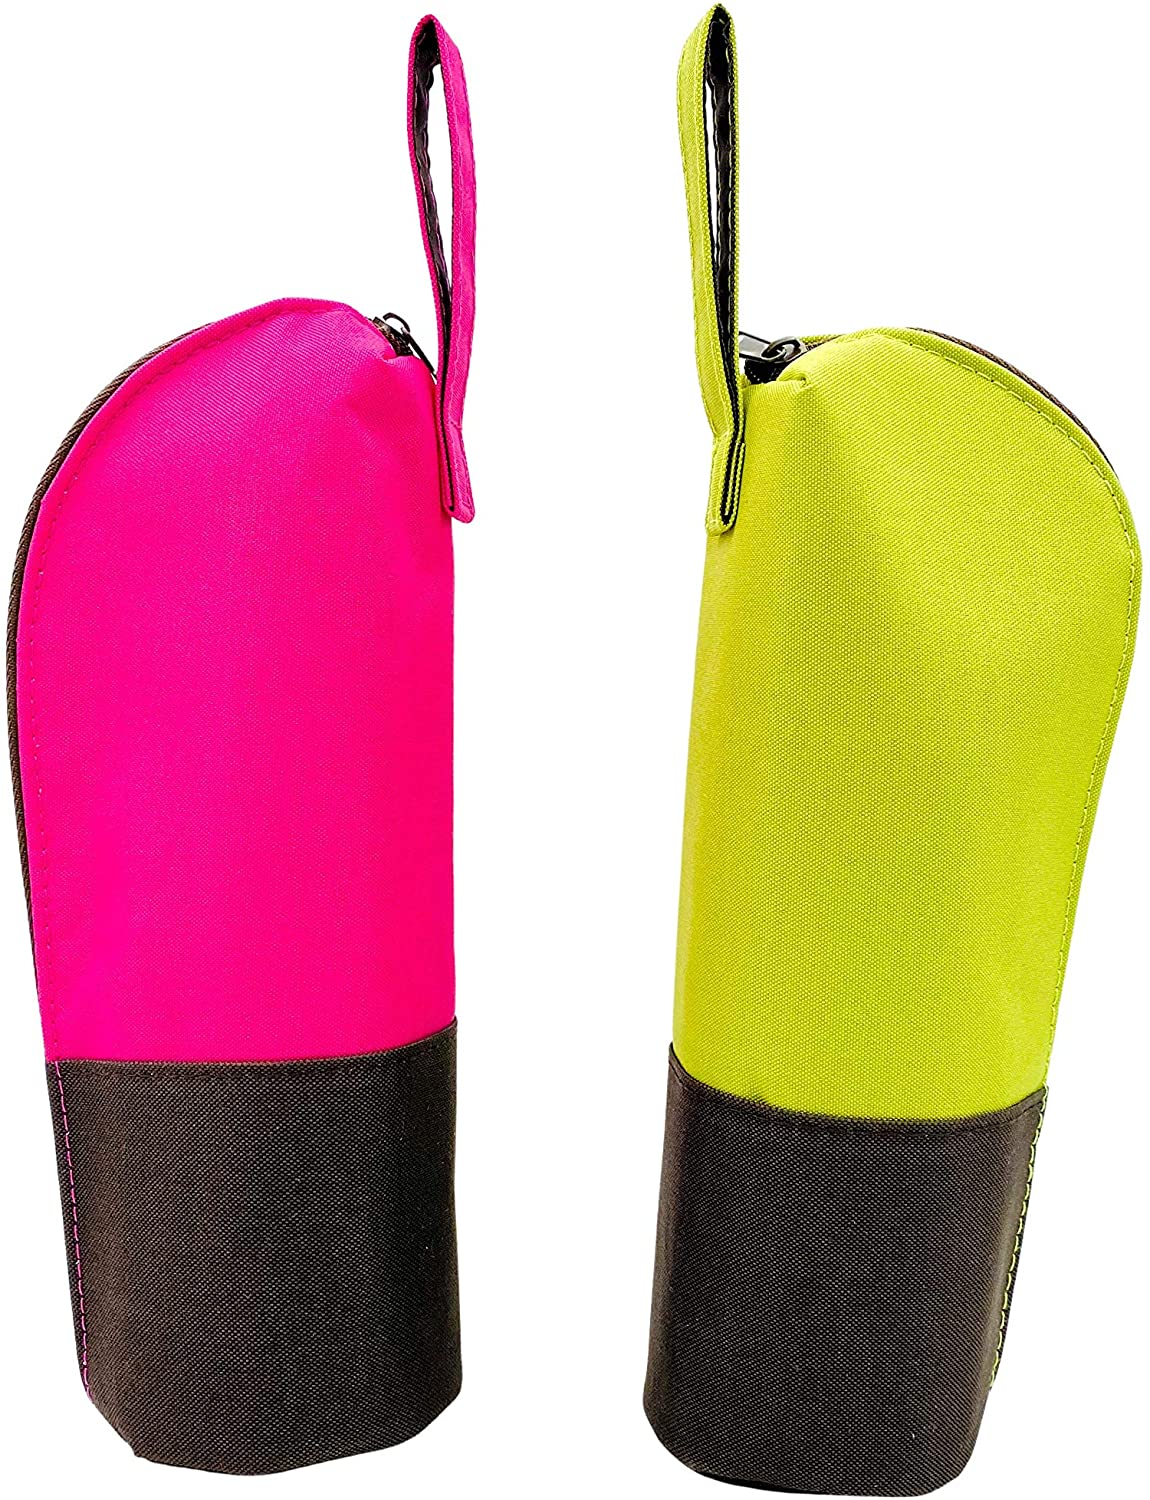 Bottle Holder (Pack of 2 Green and Pink) | Great for travel and keeping your bottle clean while outdoors